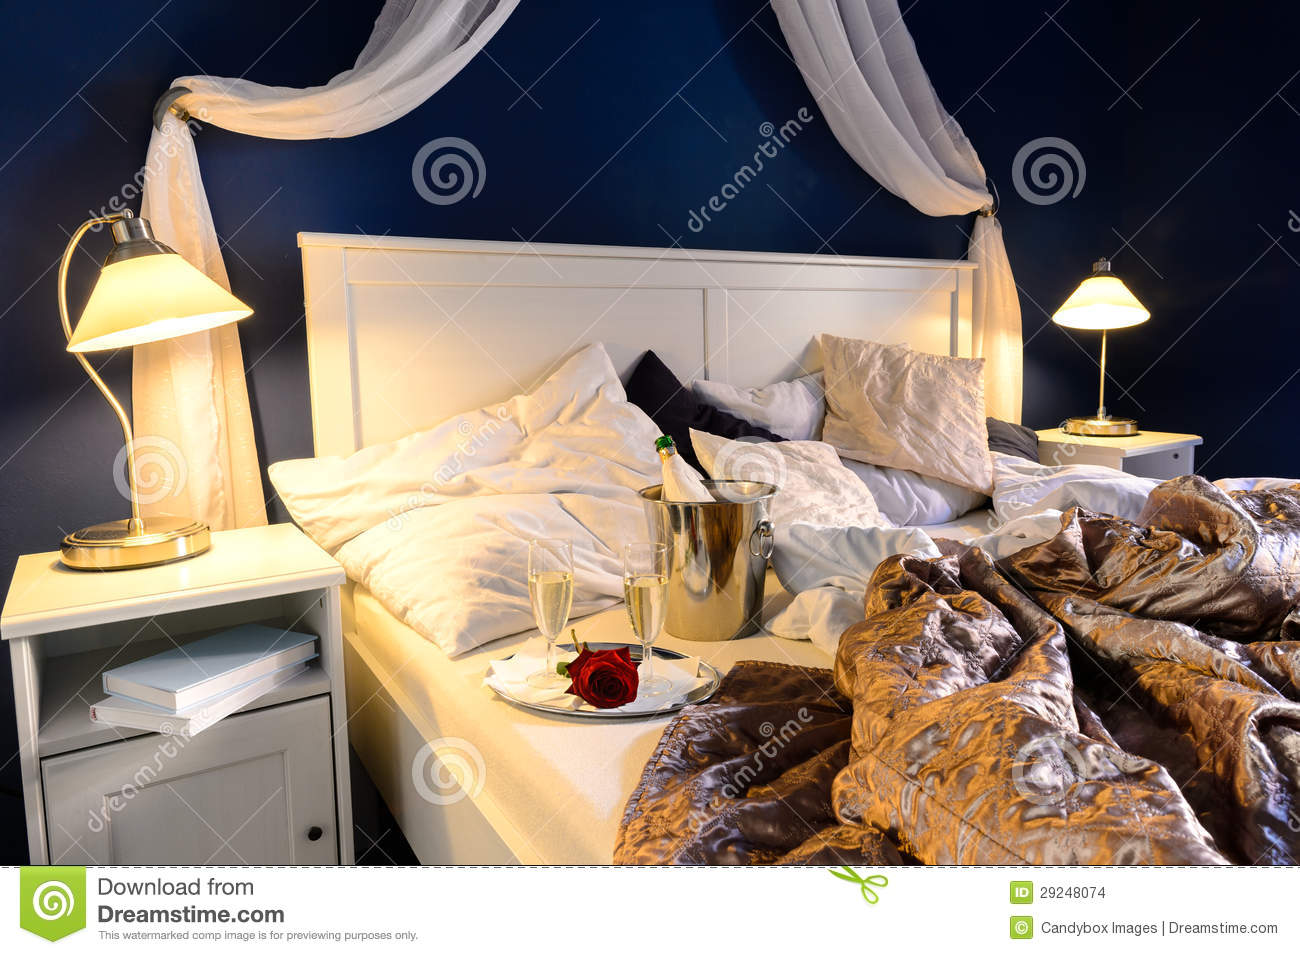 Rumpled sheets hotel bedroom romantic night stock photo for Night bed room romance